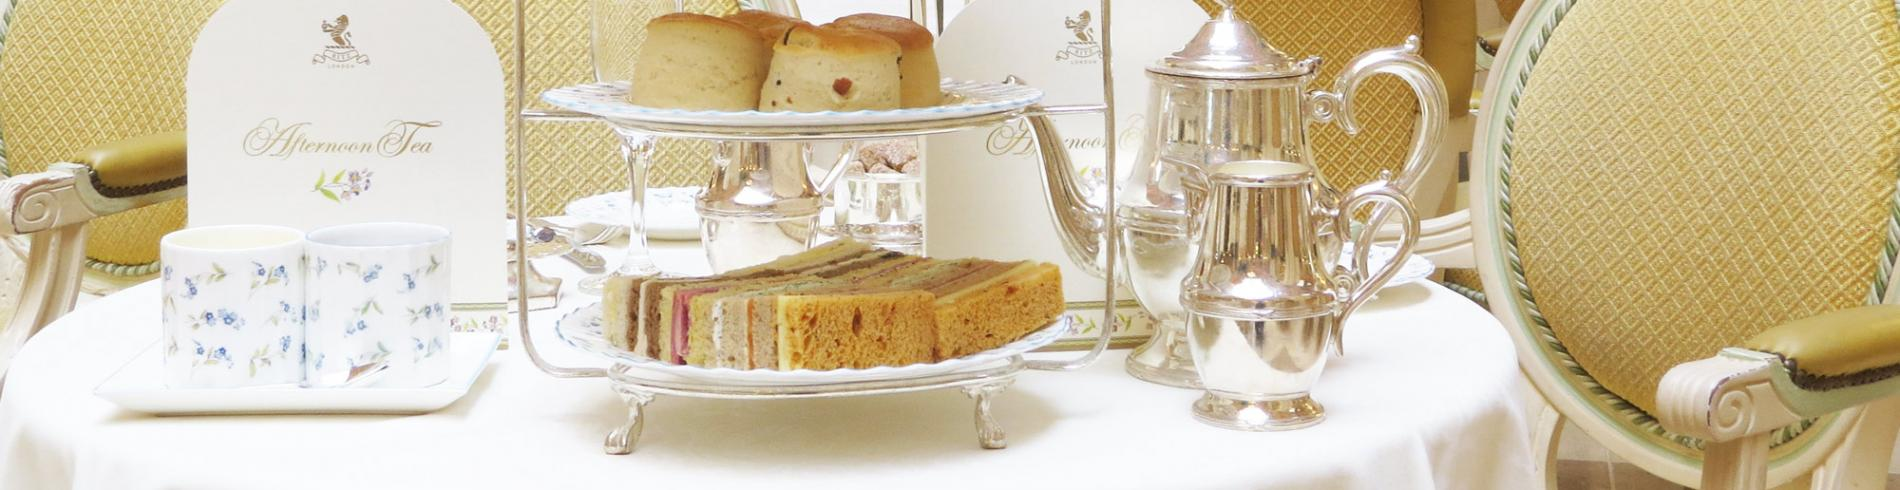 The Ritz afternoon tea table